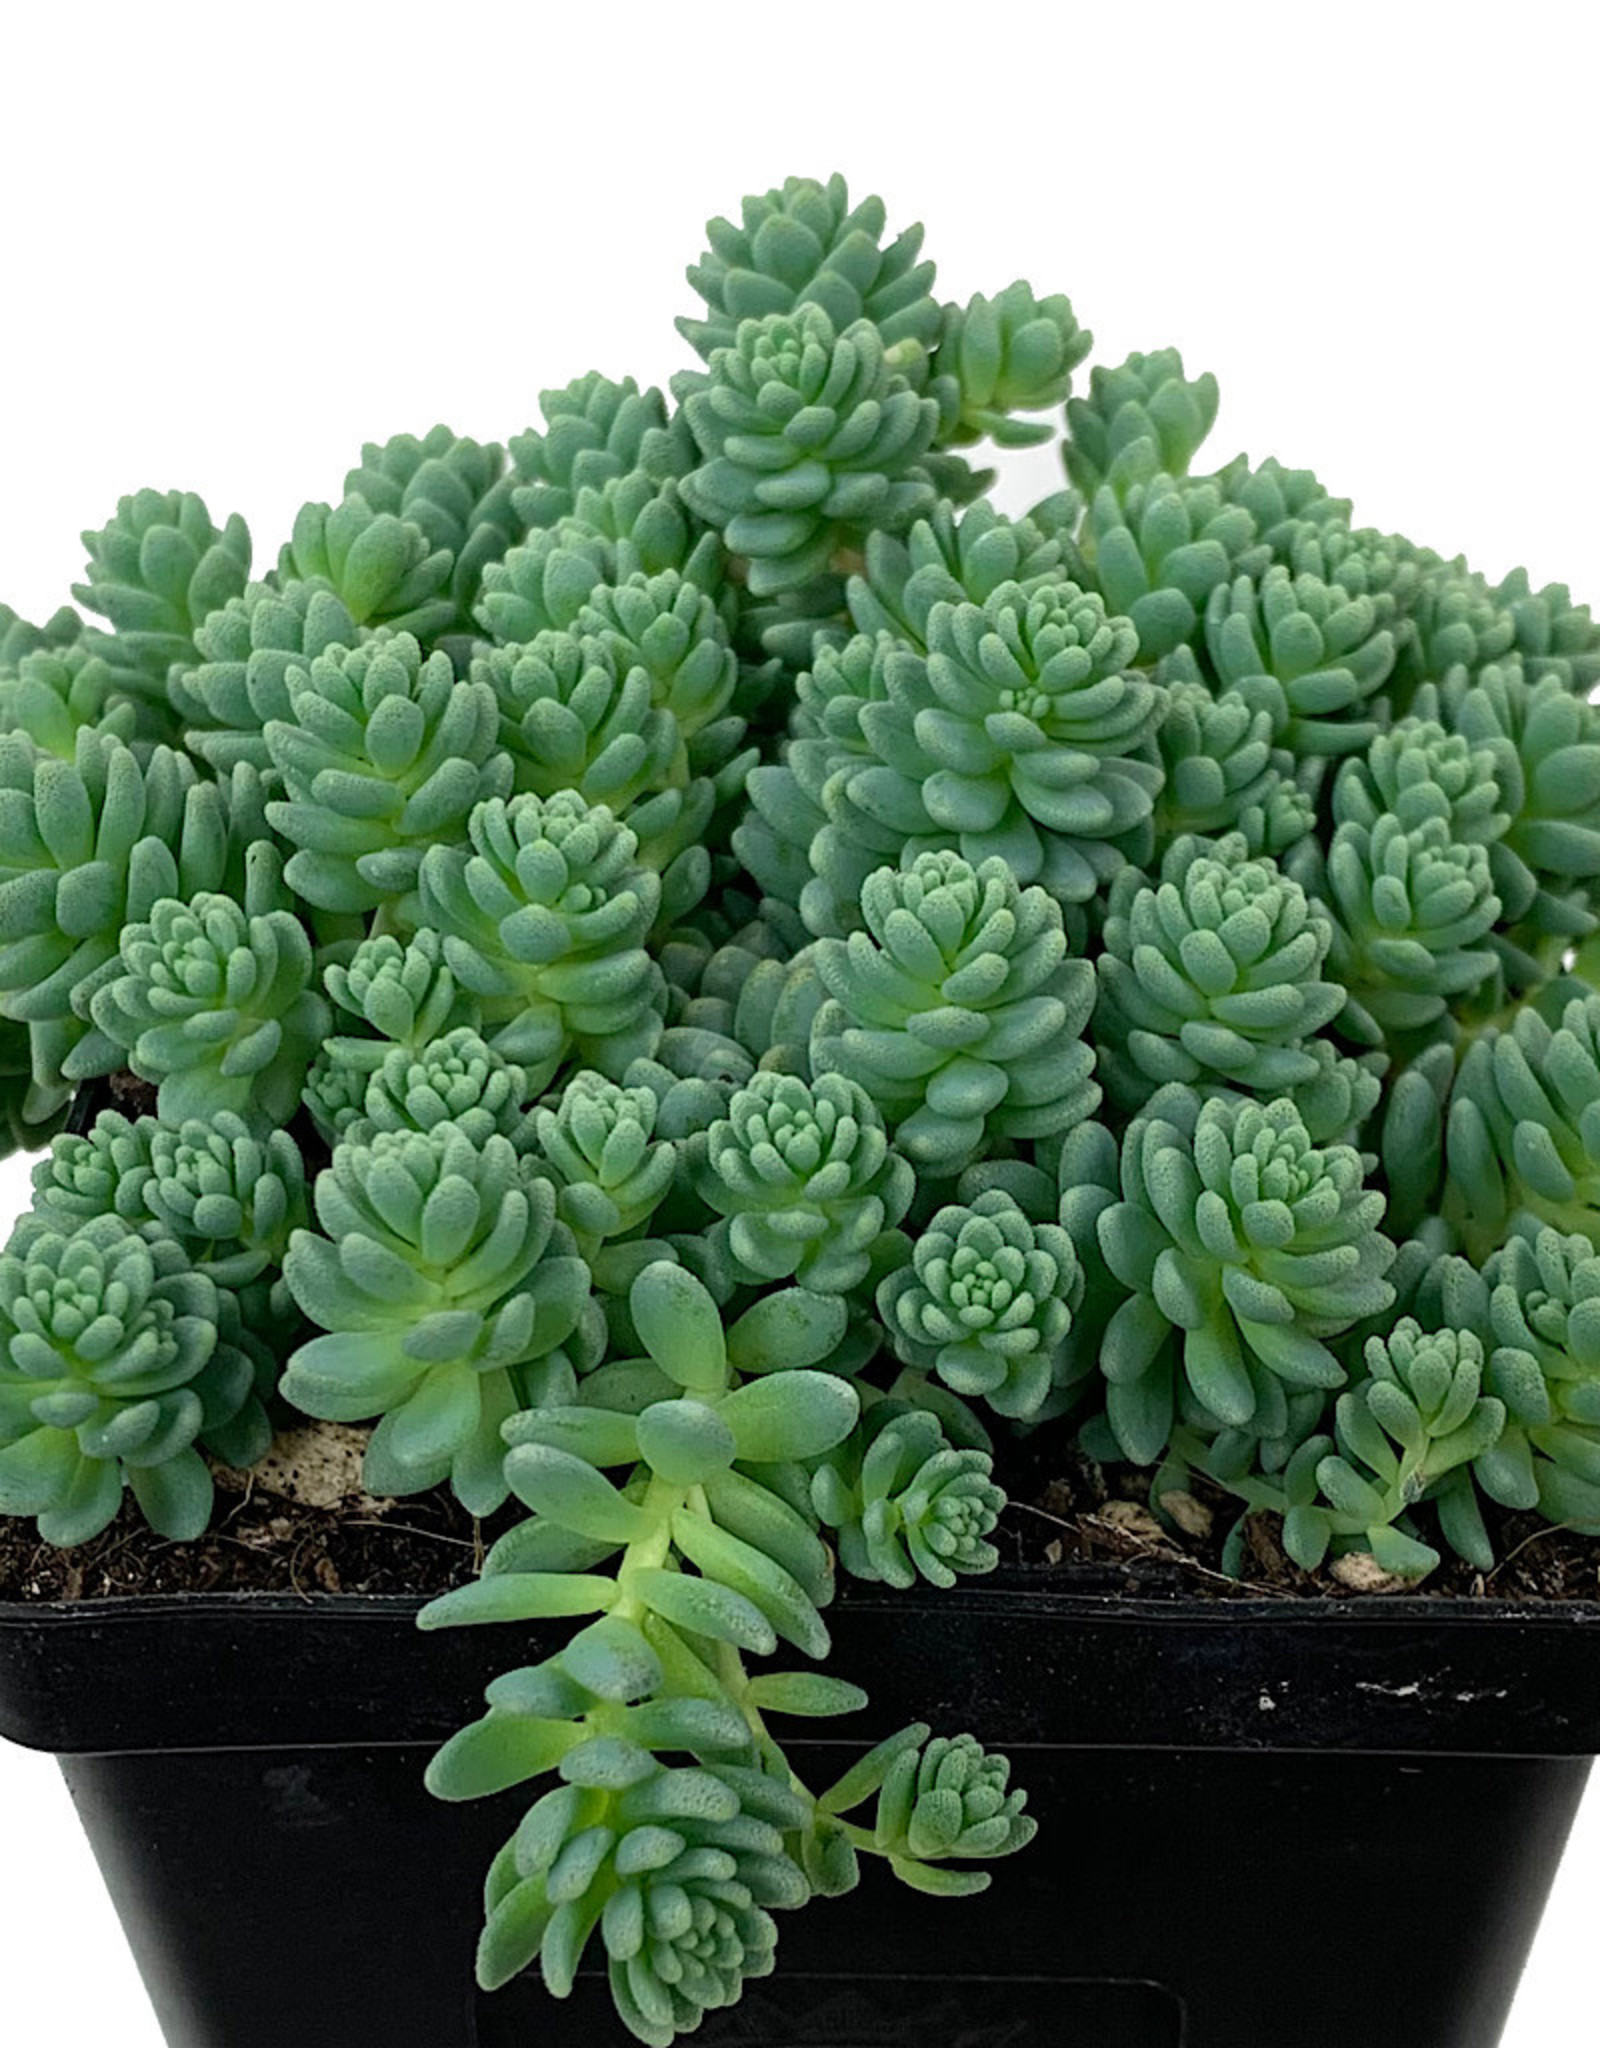 Sedum dasyphyllum 'Major' 4 inch